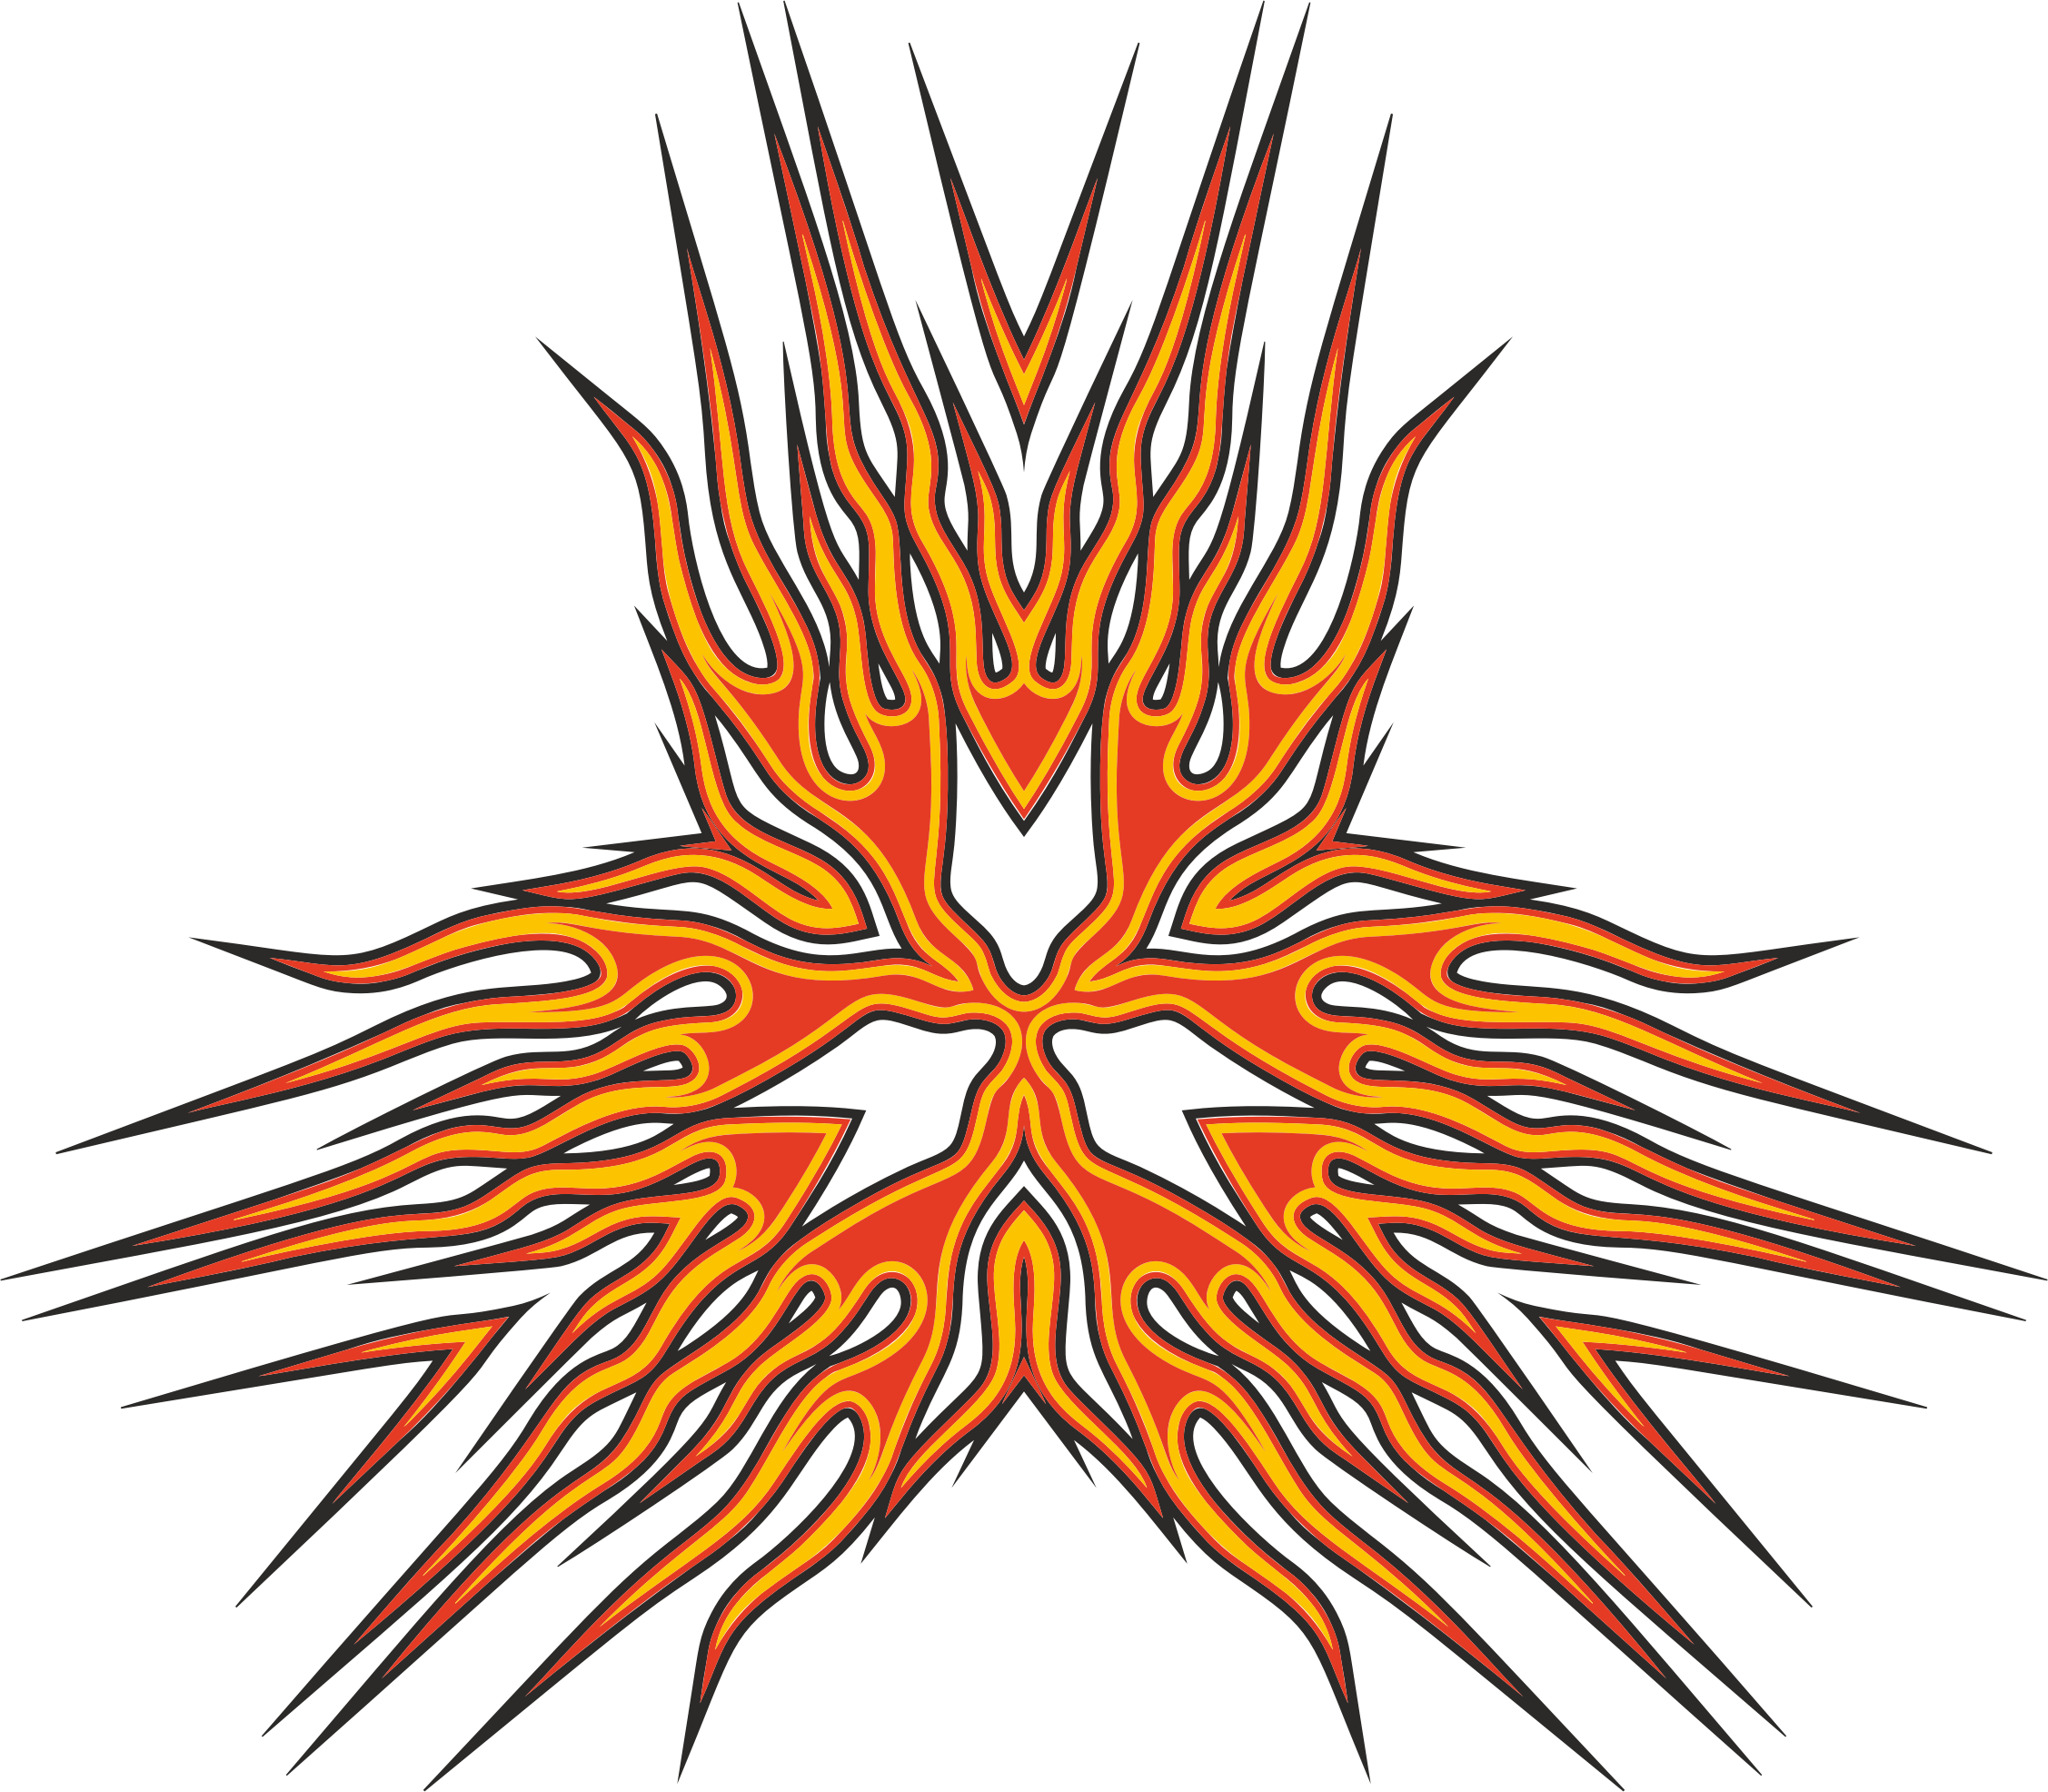 Abstract Flames Design 2 by GDJ